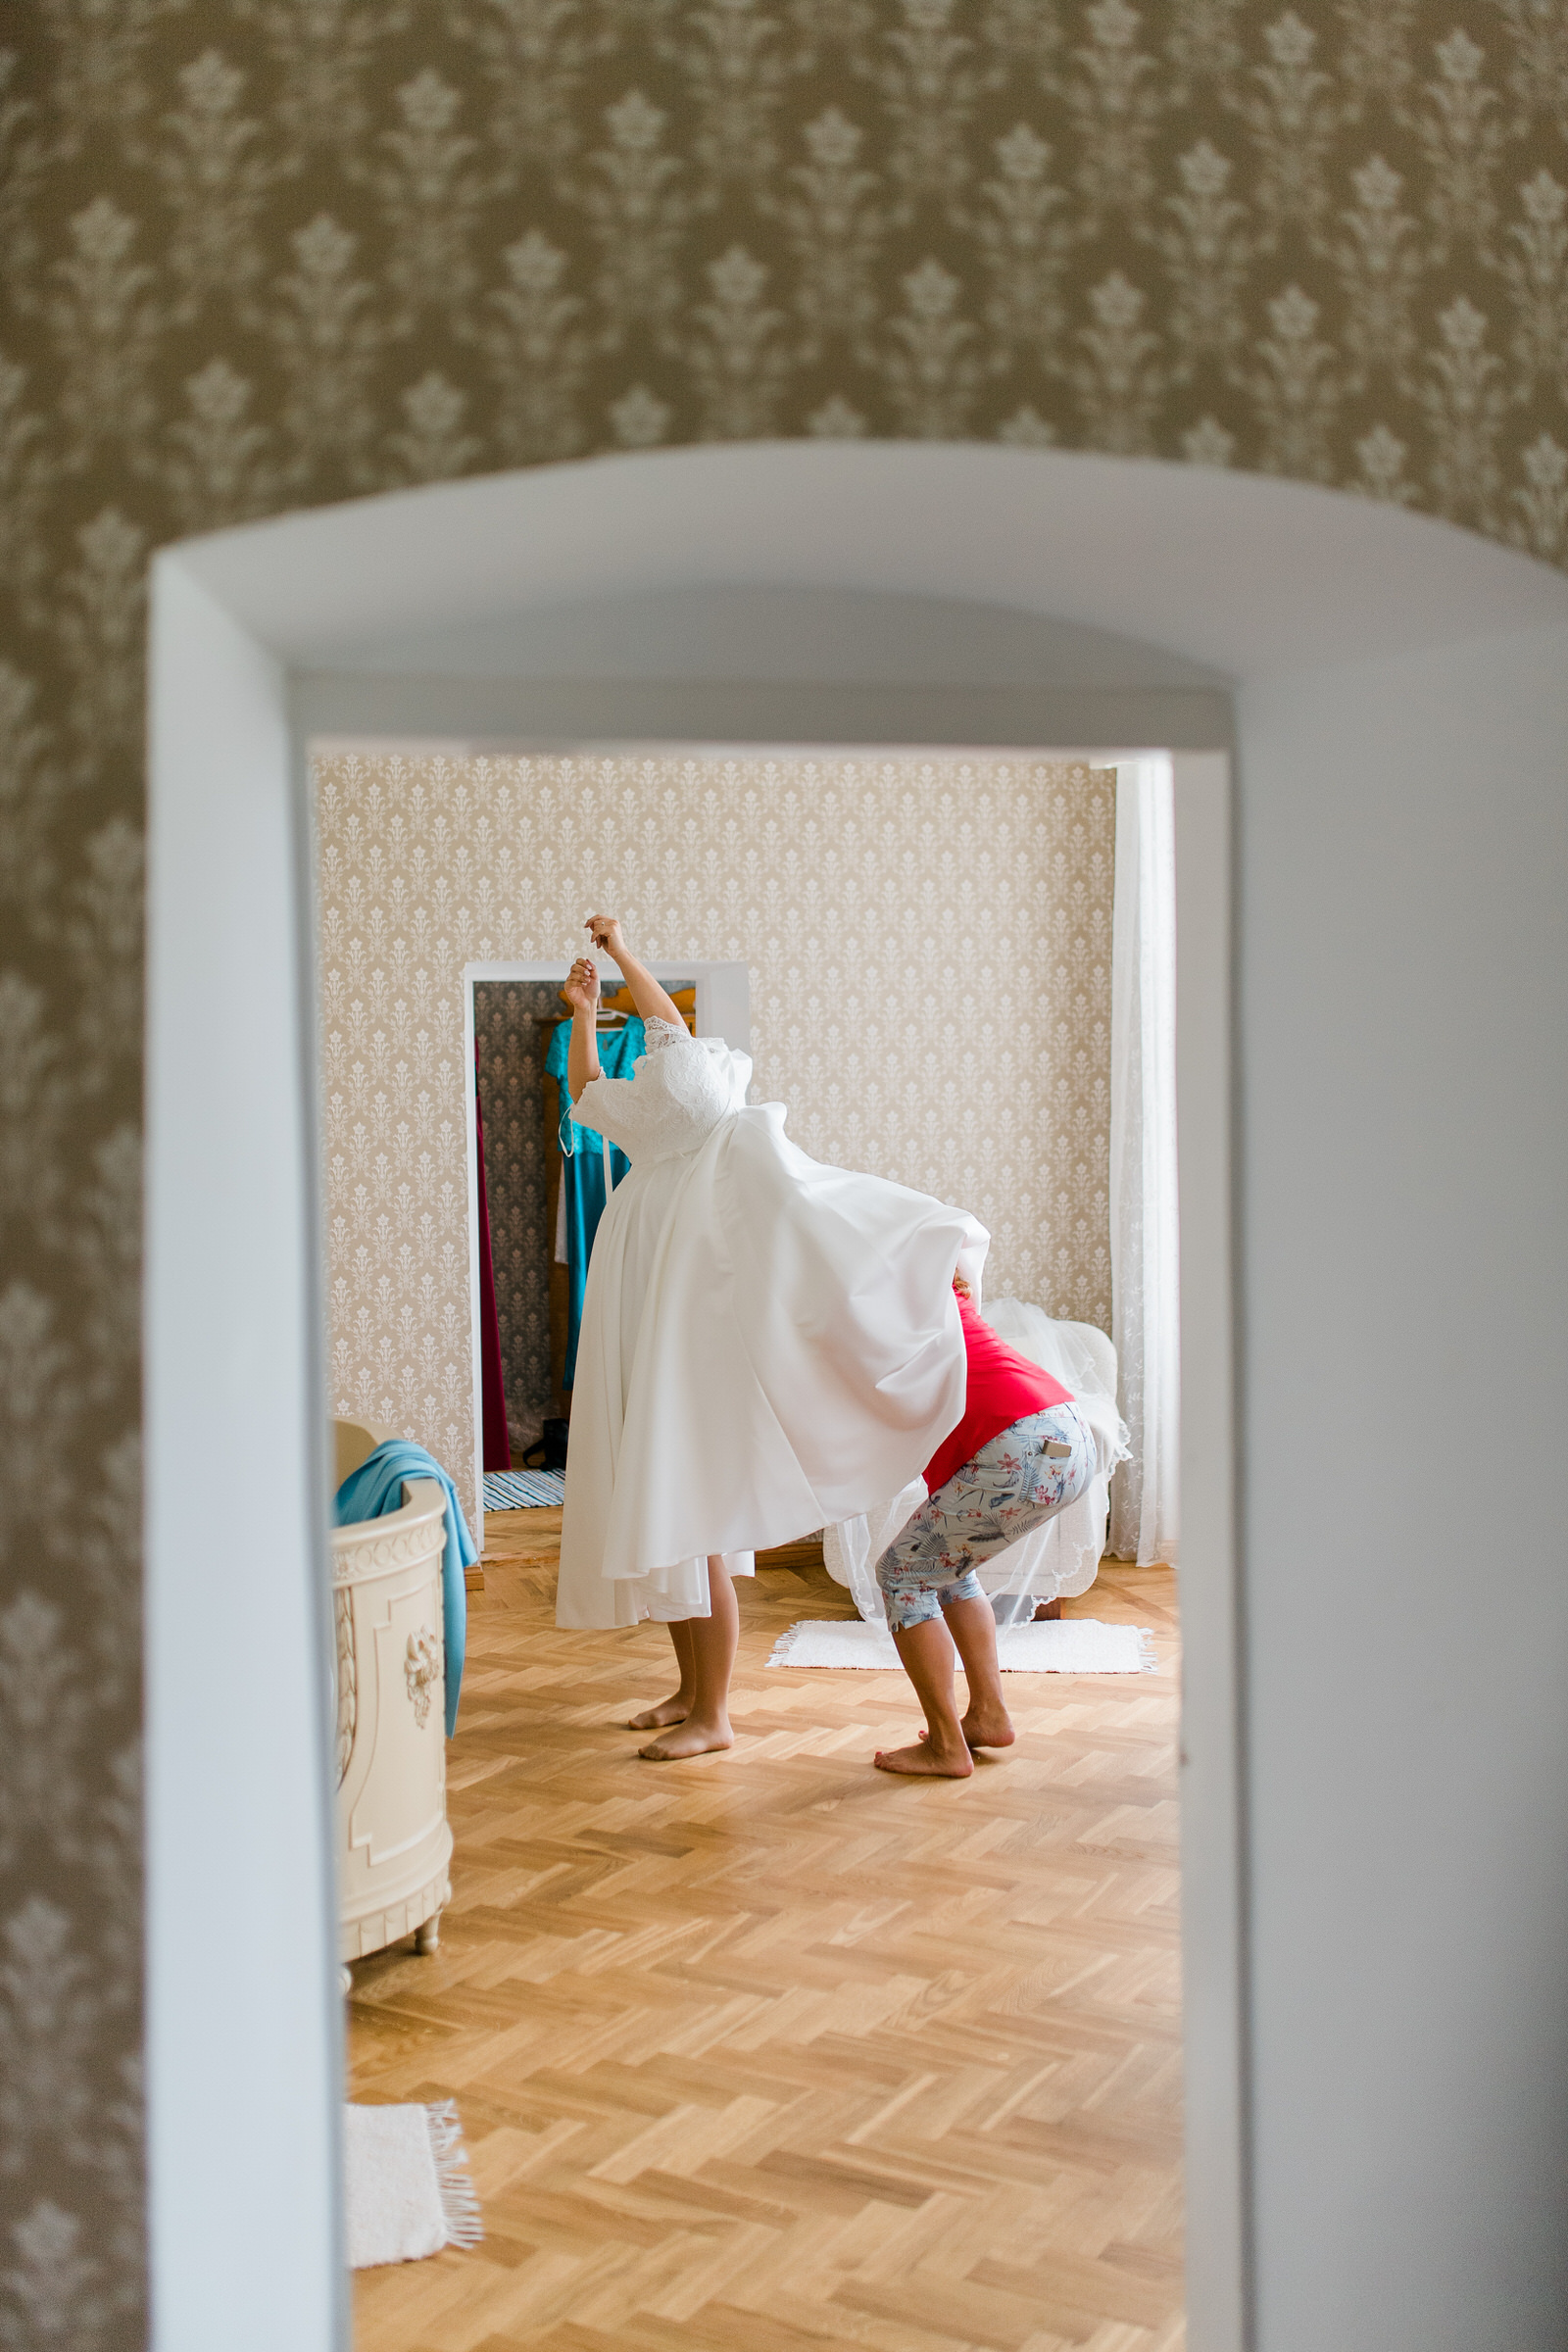 Comical headless bride getting into her gown - photo by M&J Studios